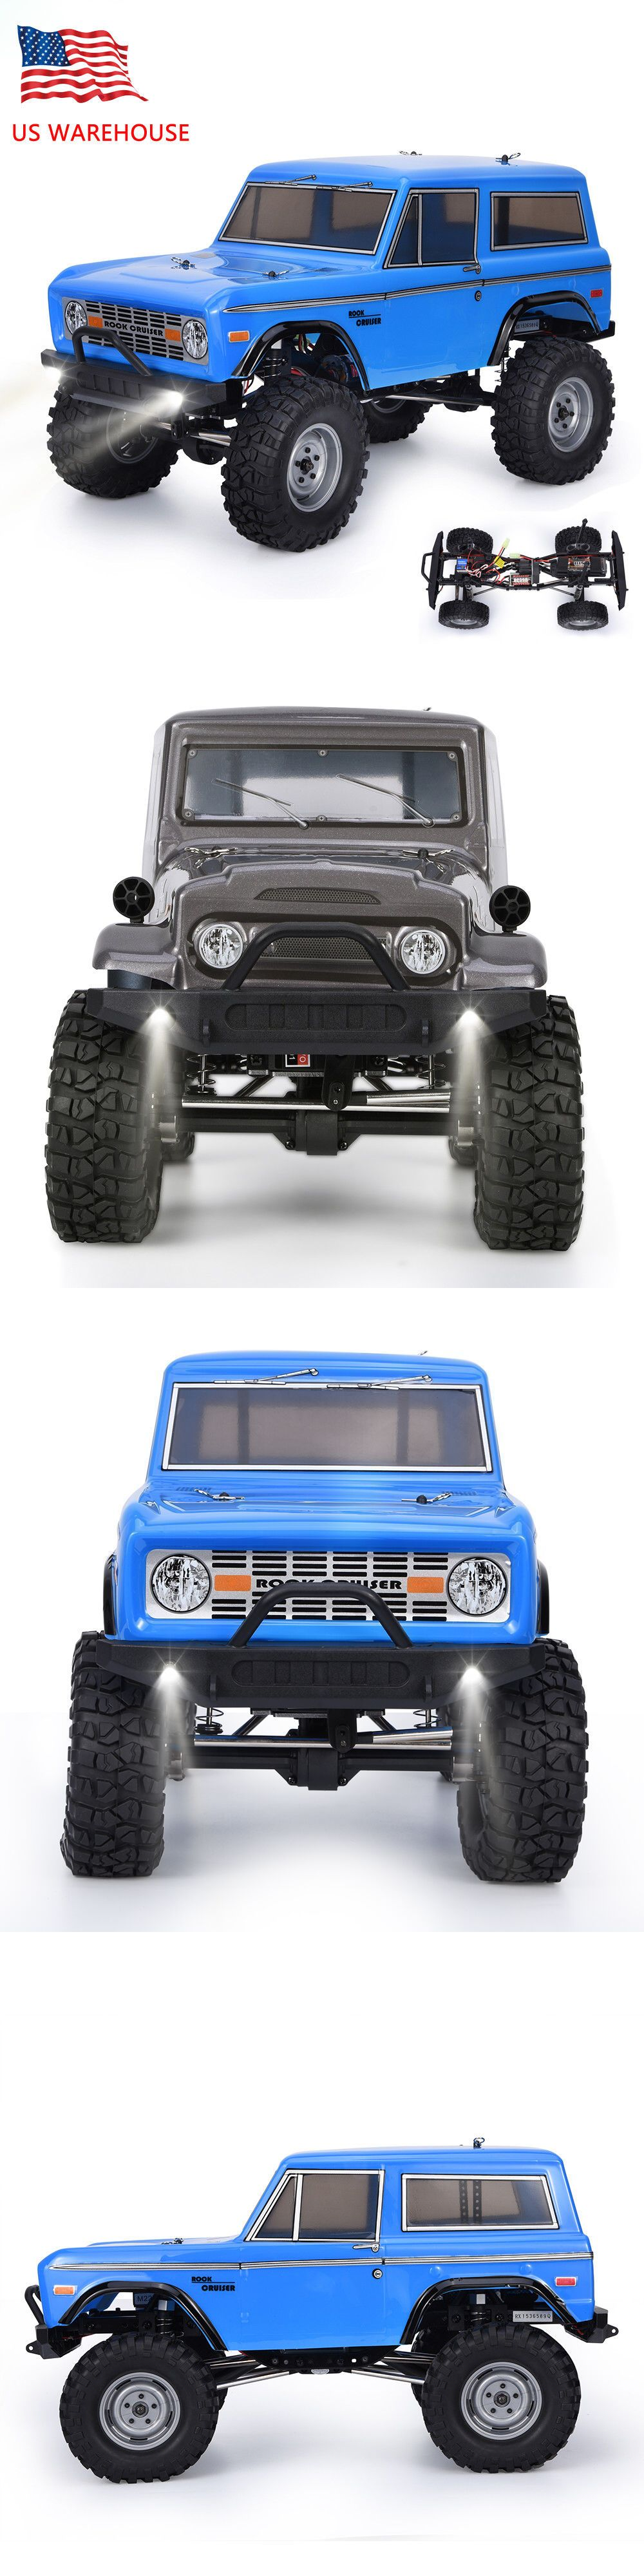 Cars Trucks and Motorcycles 182183: Hsp 4Wd 1 10 Rc Crawler